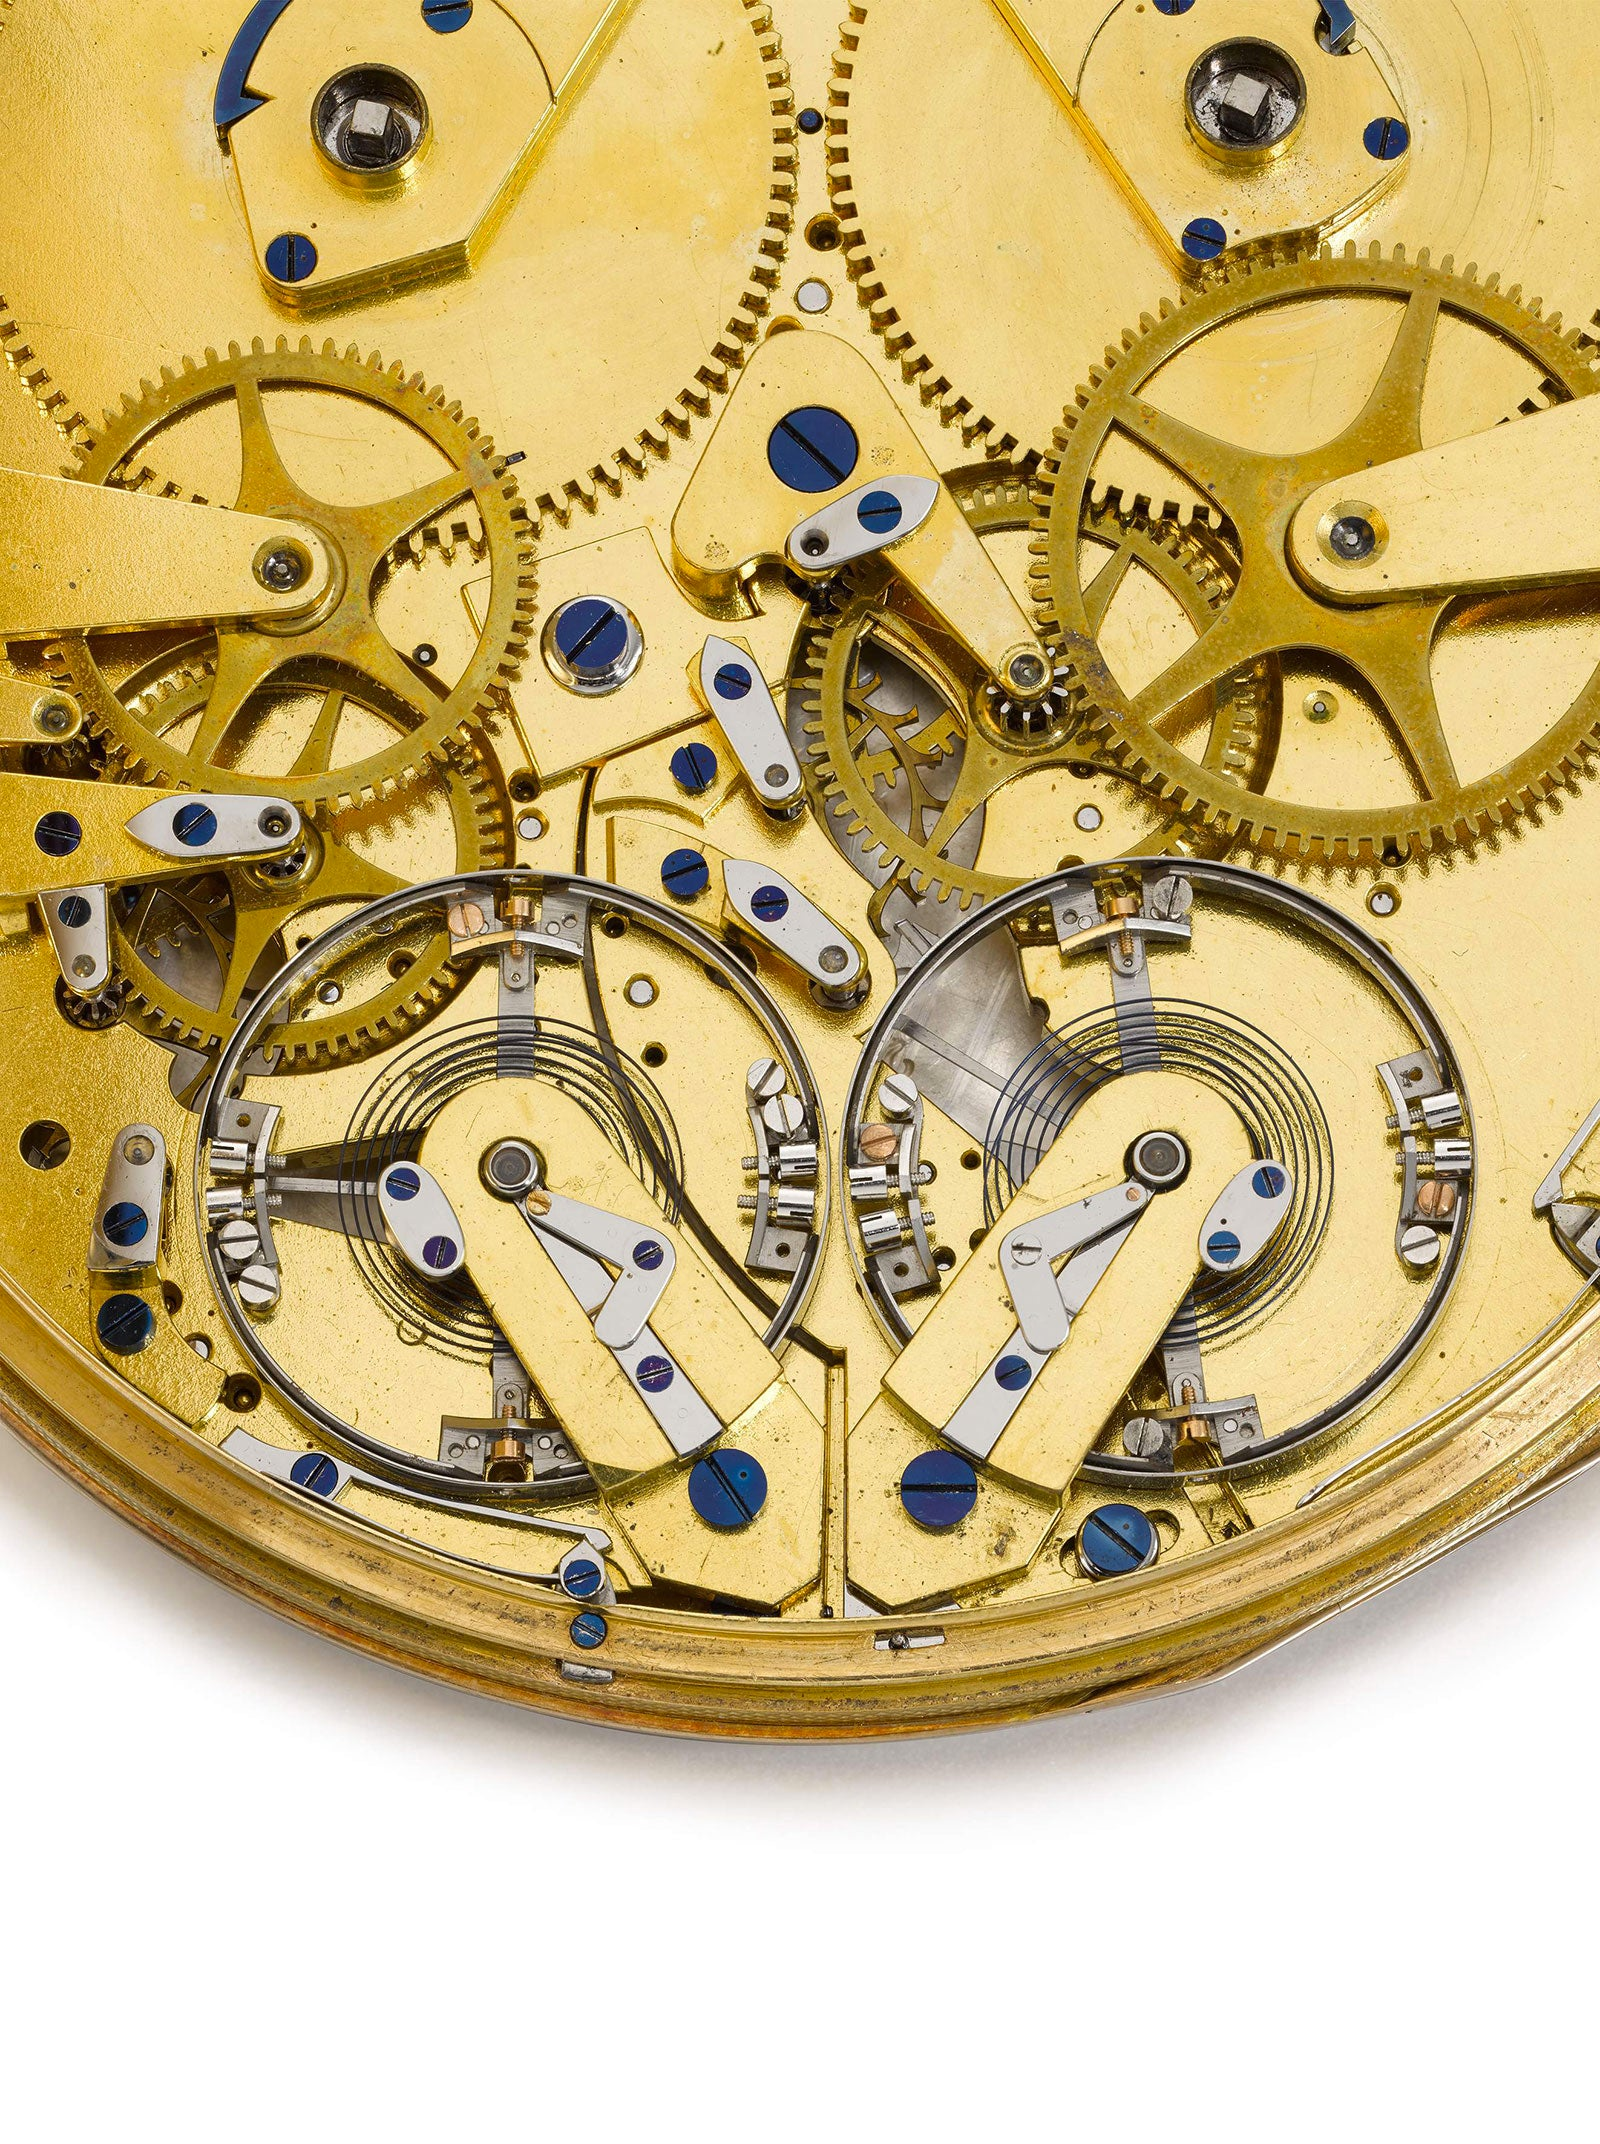 Breguet Resonance pocket watch back in Chasing Accuracy in Mechanical Wristwatches for A Collected Man London